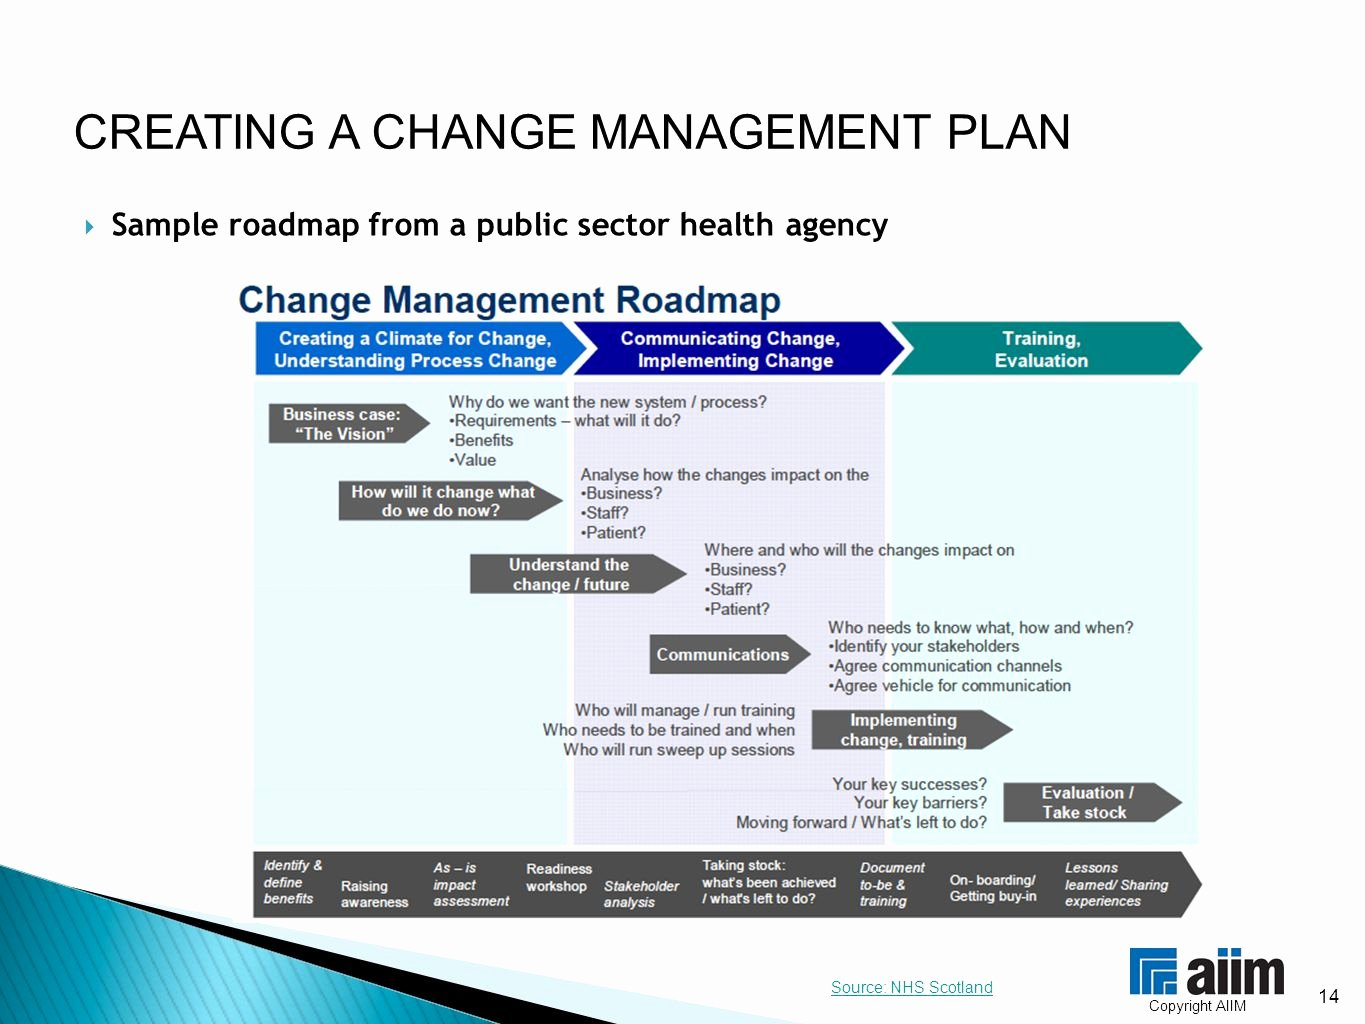 Change Management Plan Template New Creating A Change Management Plan organizational Change